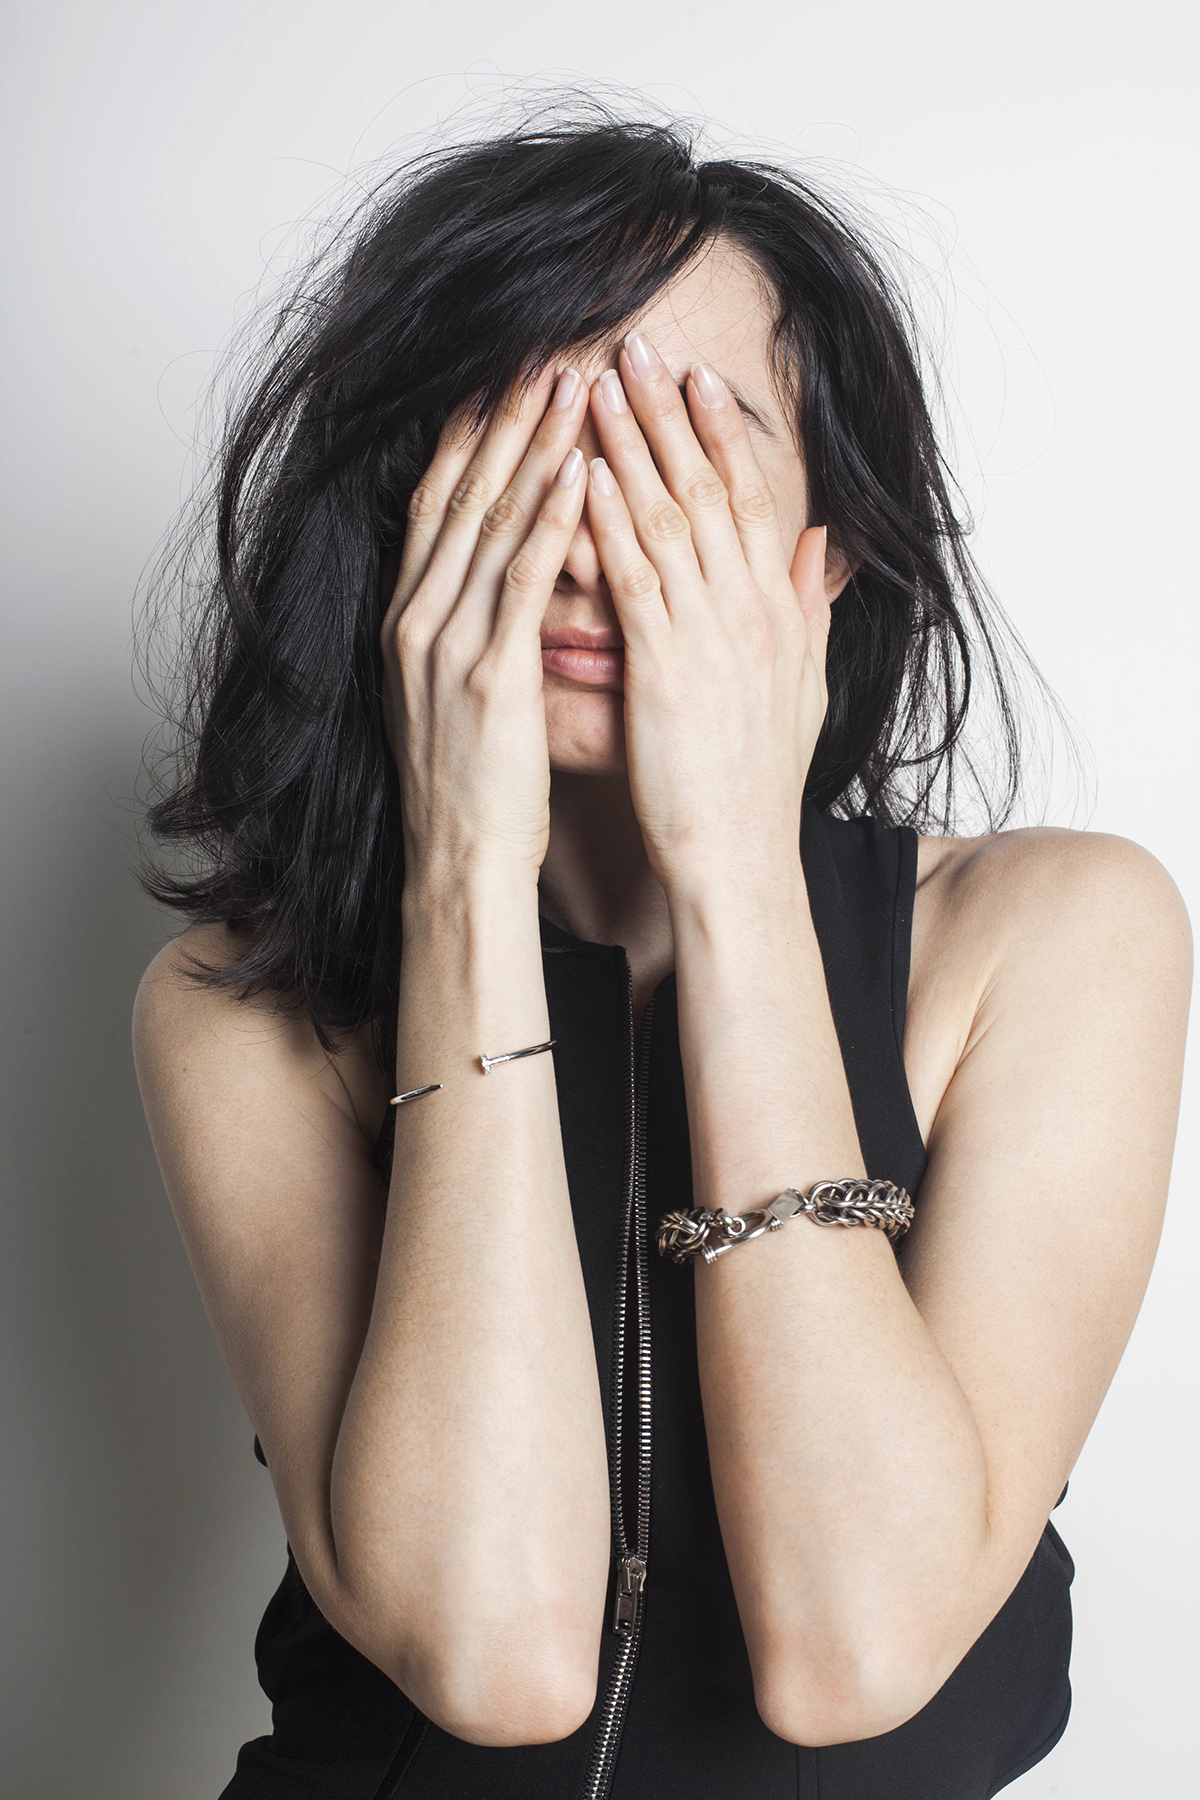 Woman covering her eyes, face